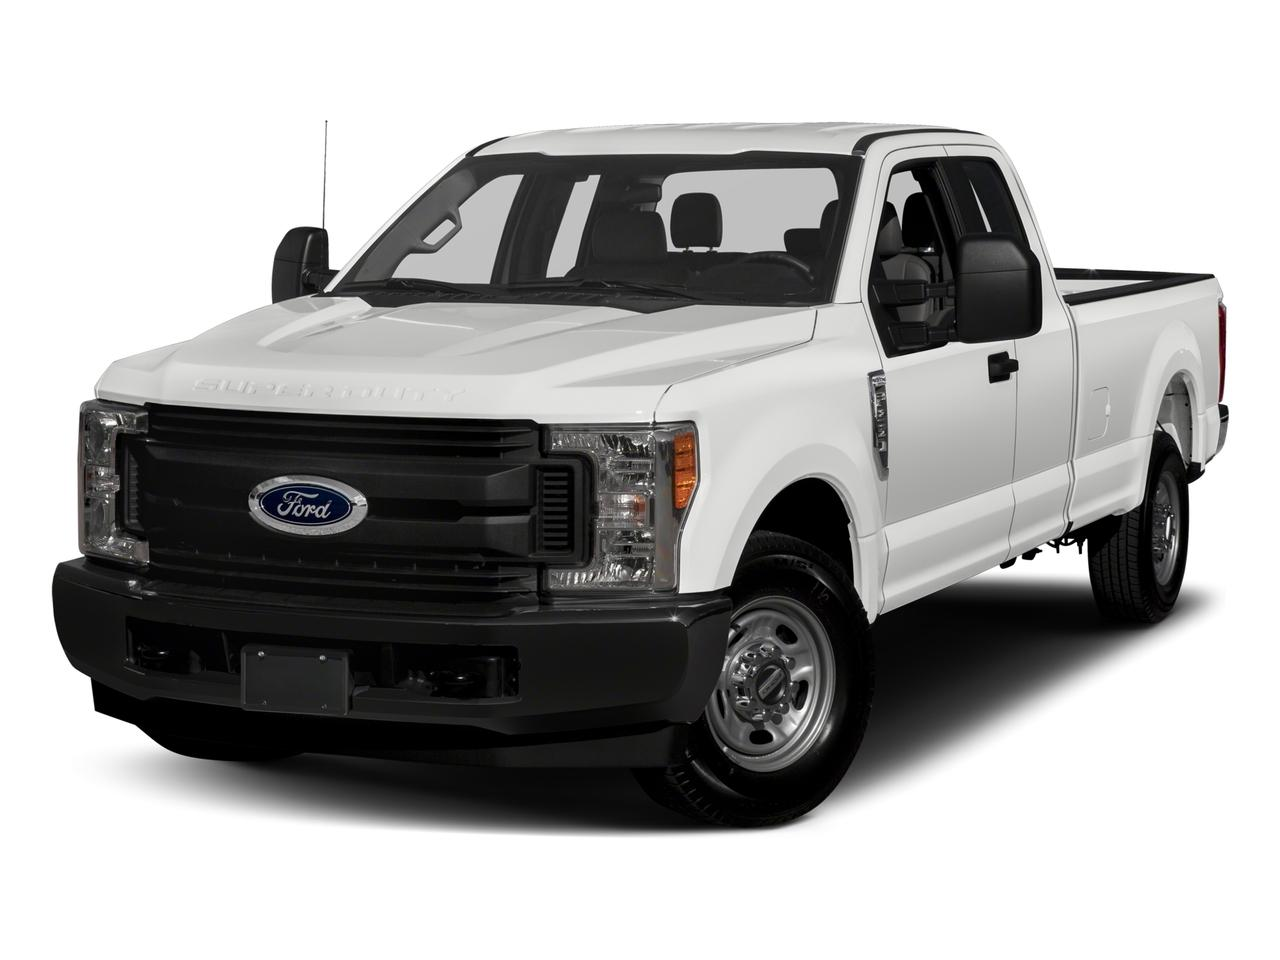 2017 Ford Super Duty F-350 SRW Vehicle Photo in NEENAH, WI 54956-2243